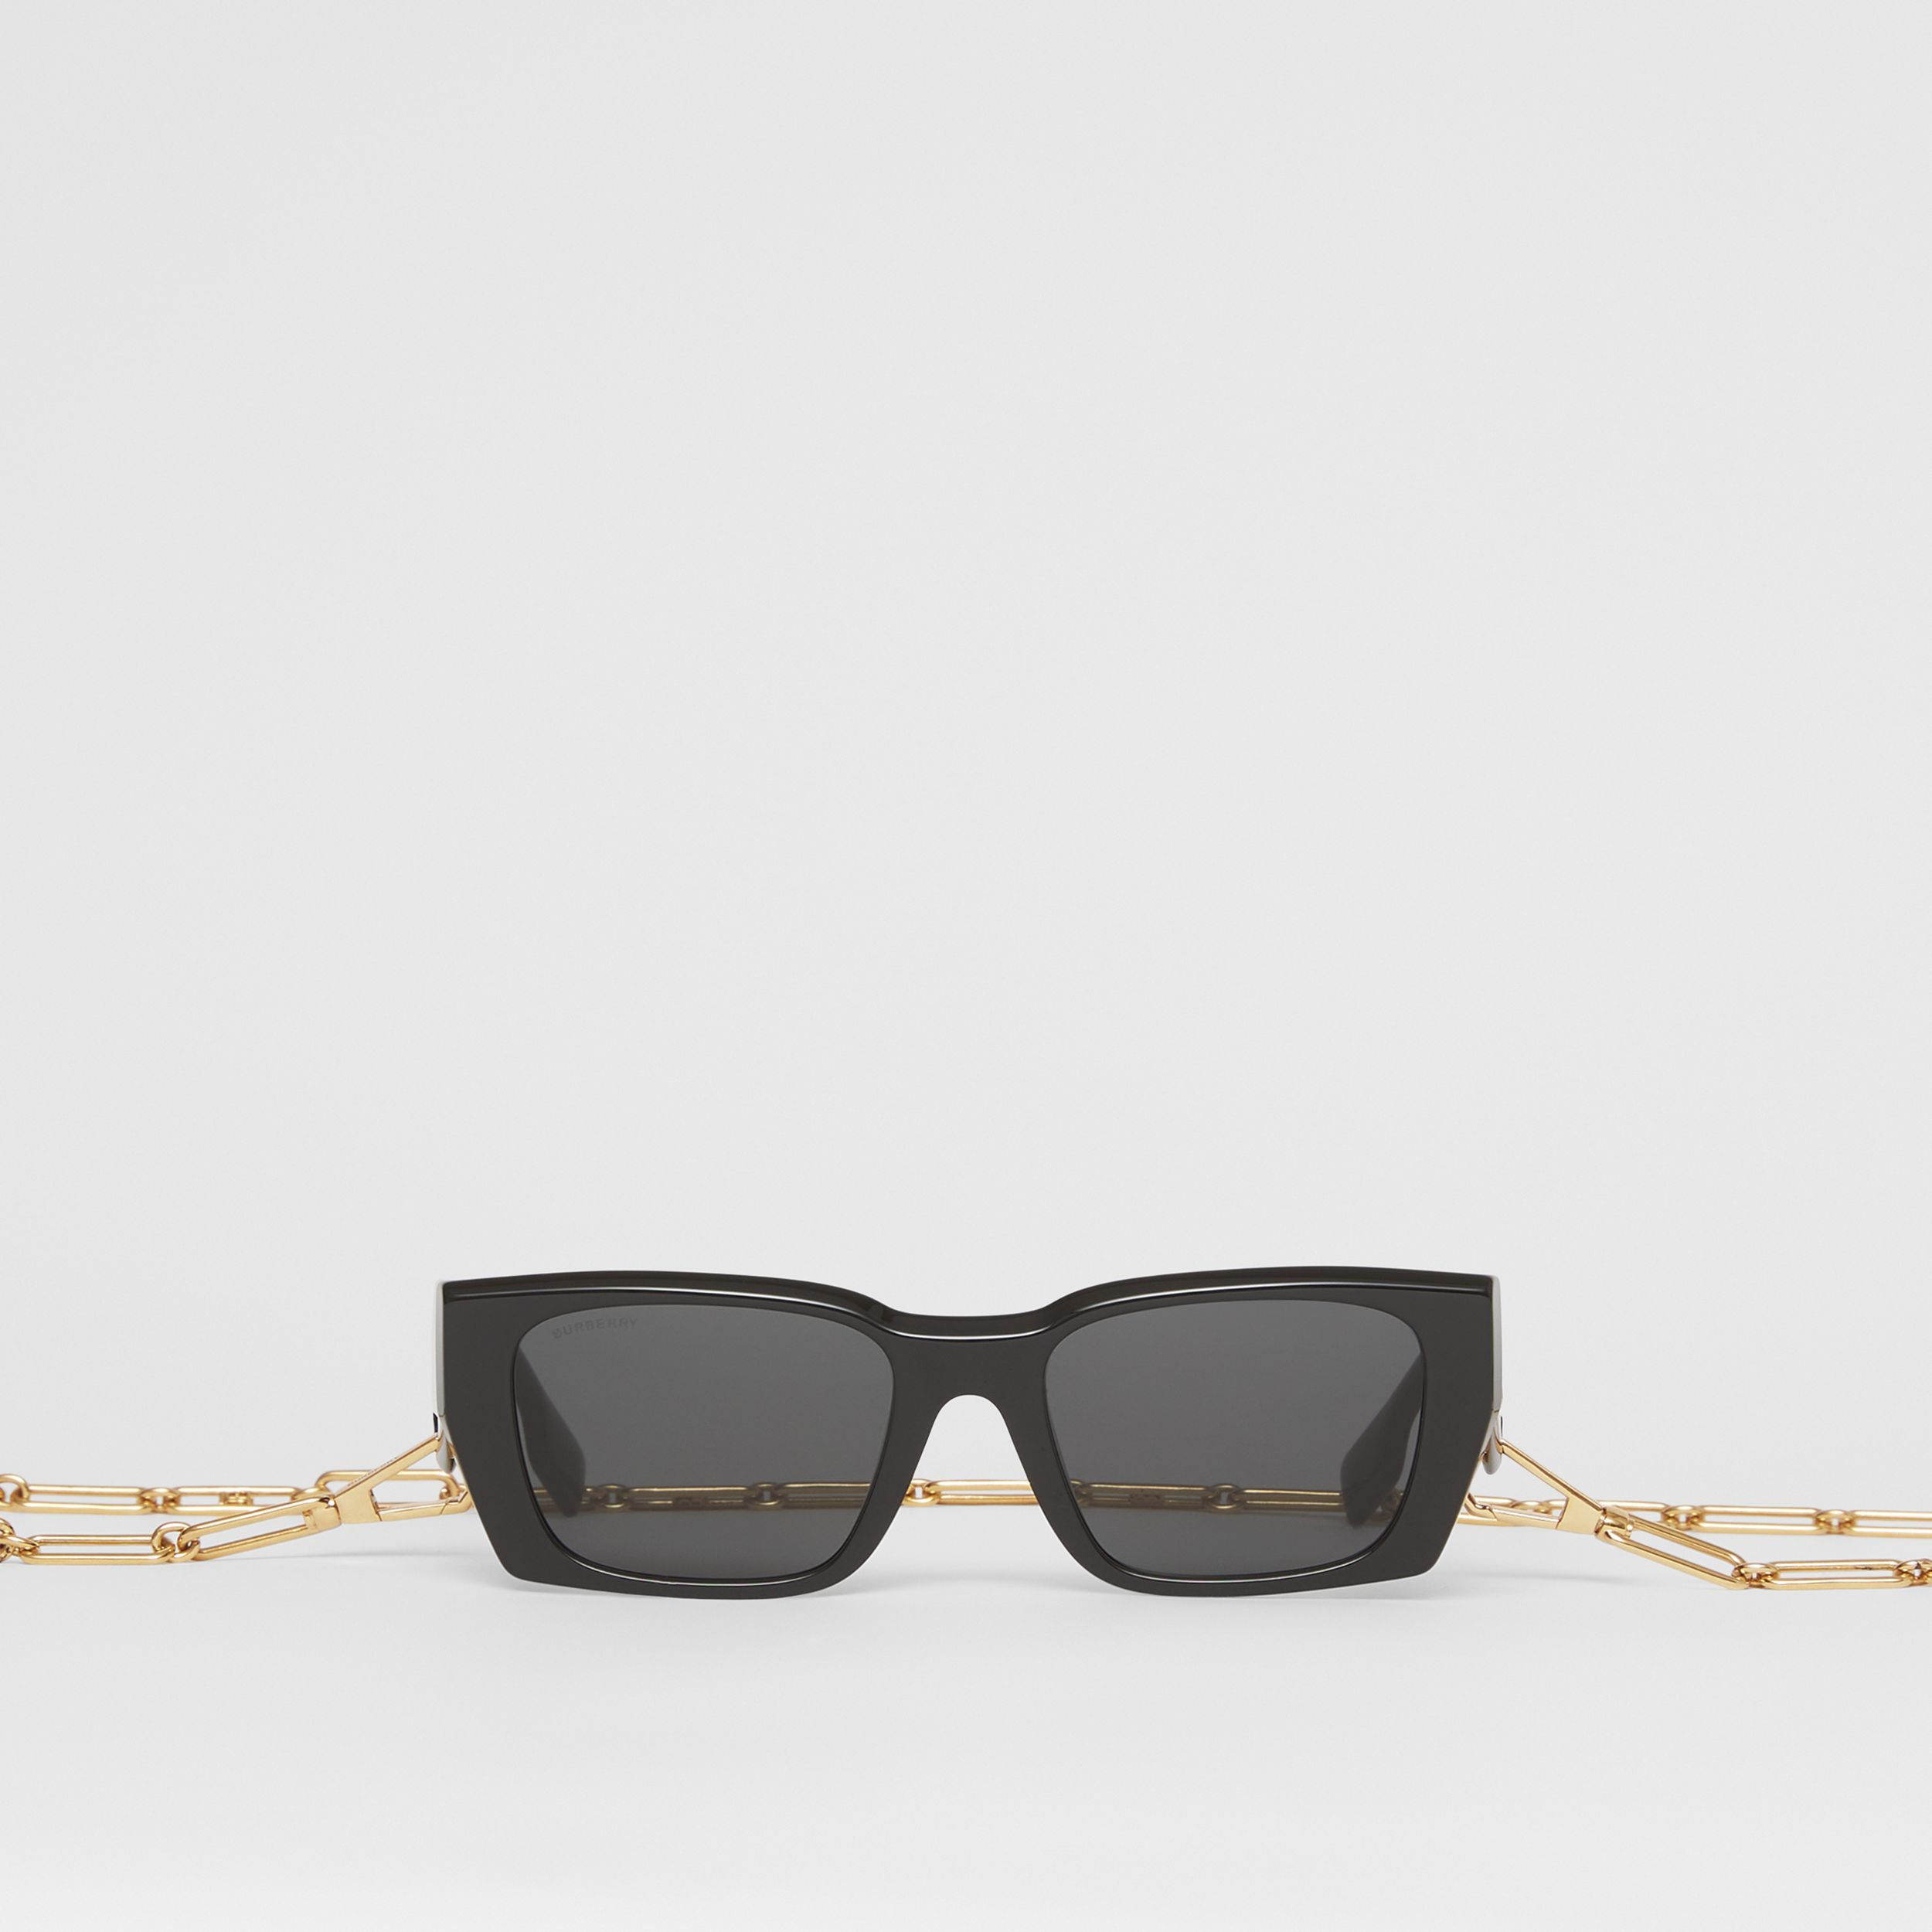 B Motif Rectangular Frame Sunglasses with Chain in Black - Women | Burberry - 1